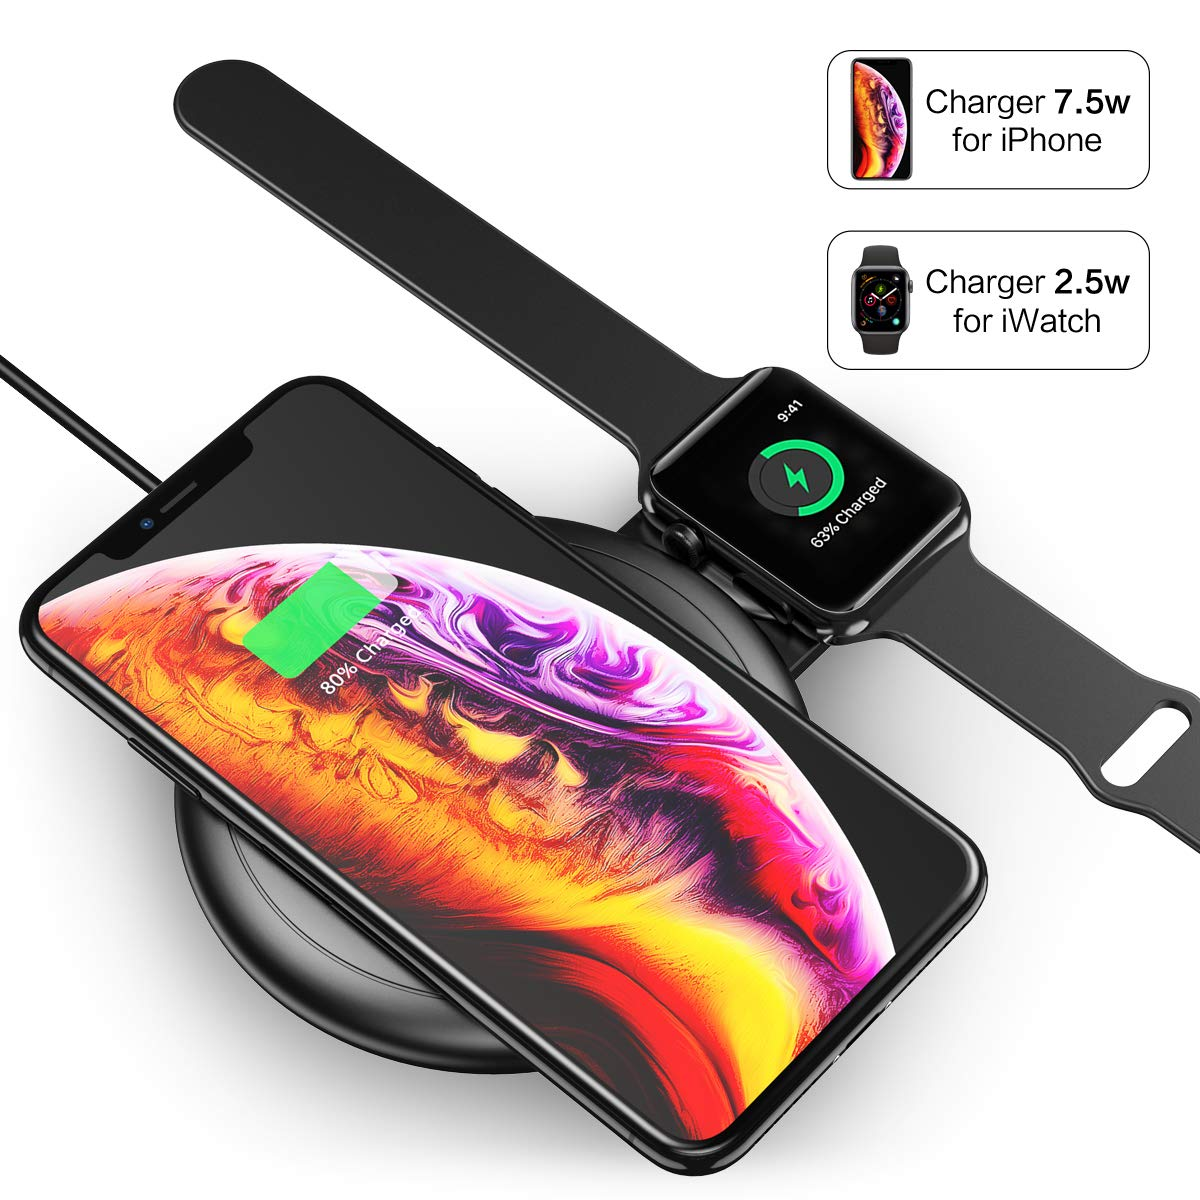 los angeles 2682d b4048 2 in 1 10W Qi Fast Wireless Charger for iWatch for iPhone Xs Max/XR/X/8  Plus/8 Samsung Note 9/8 and More